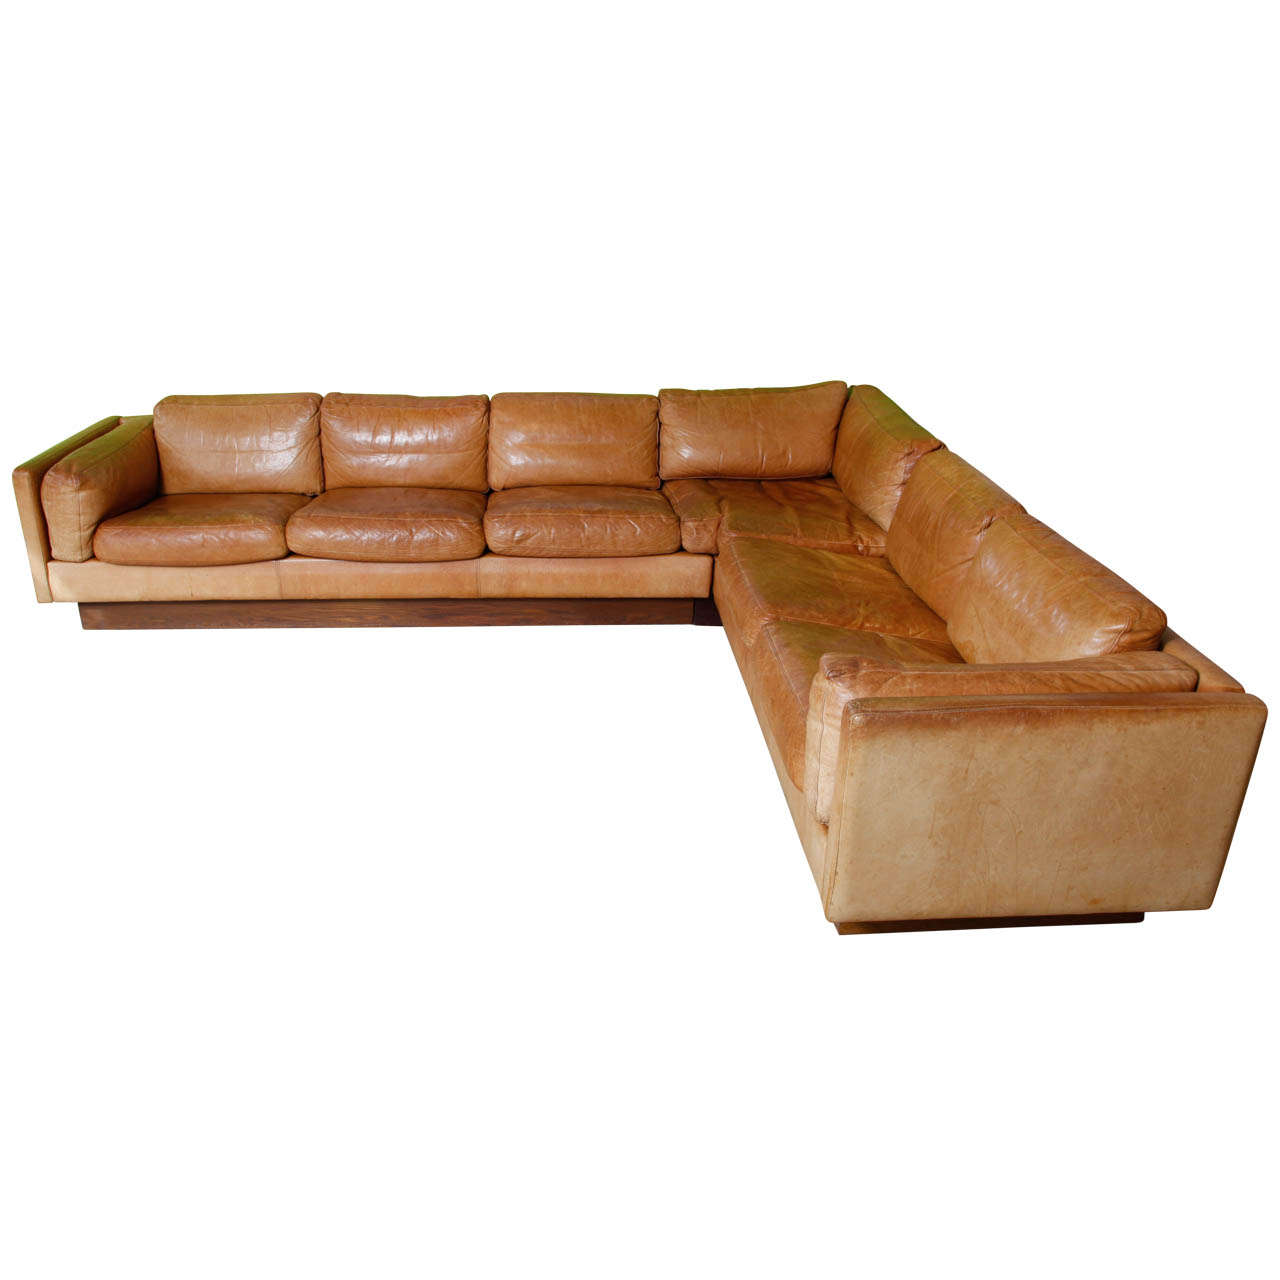 percival lafer sofa corsica black reclining console l shaped leather and wood 1970 at 1stdibs